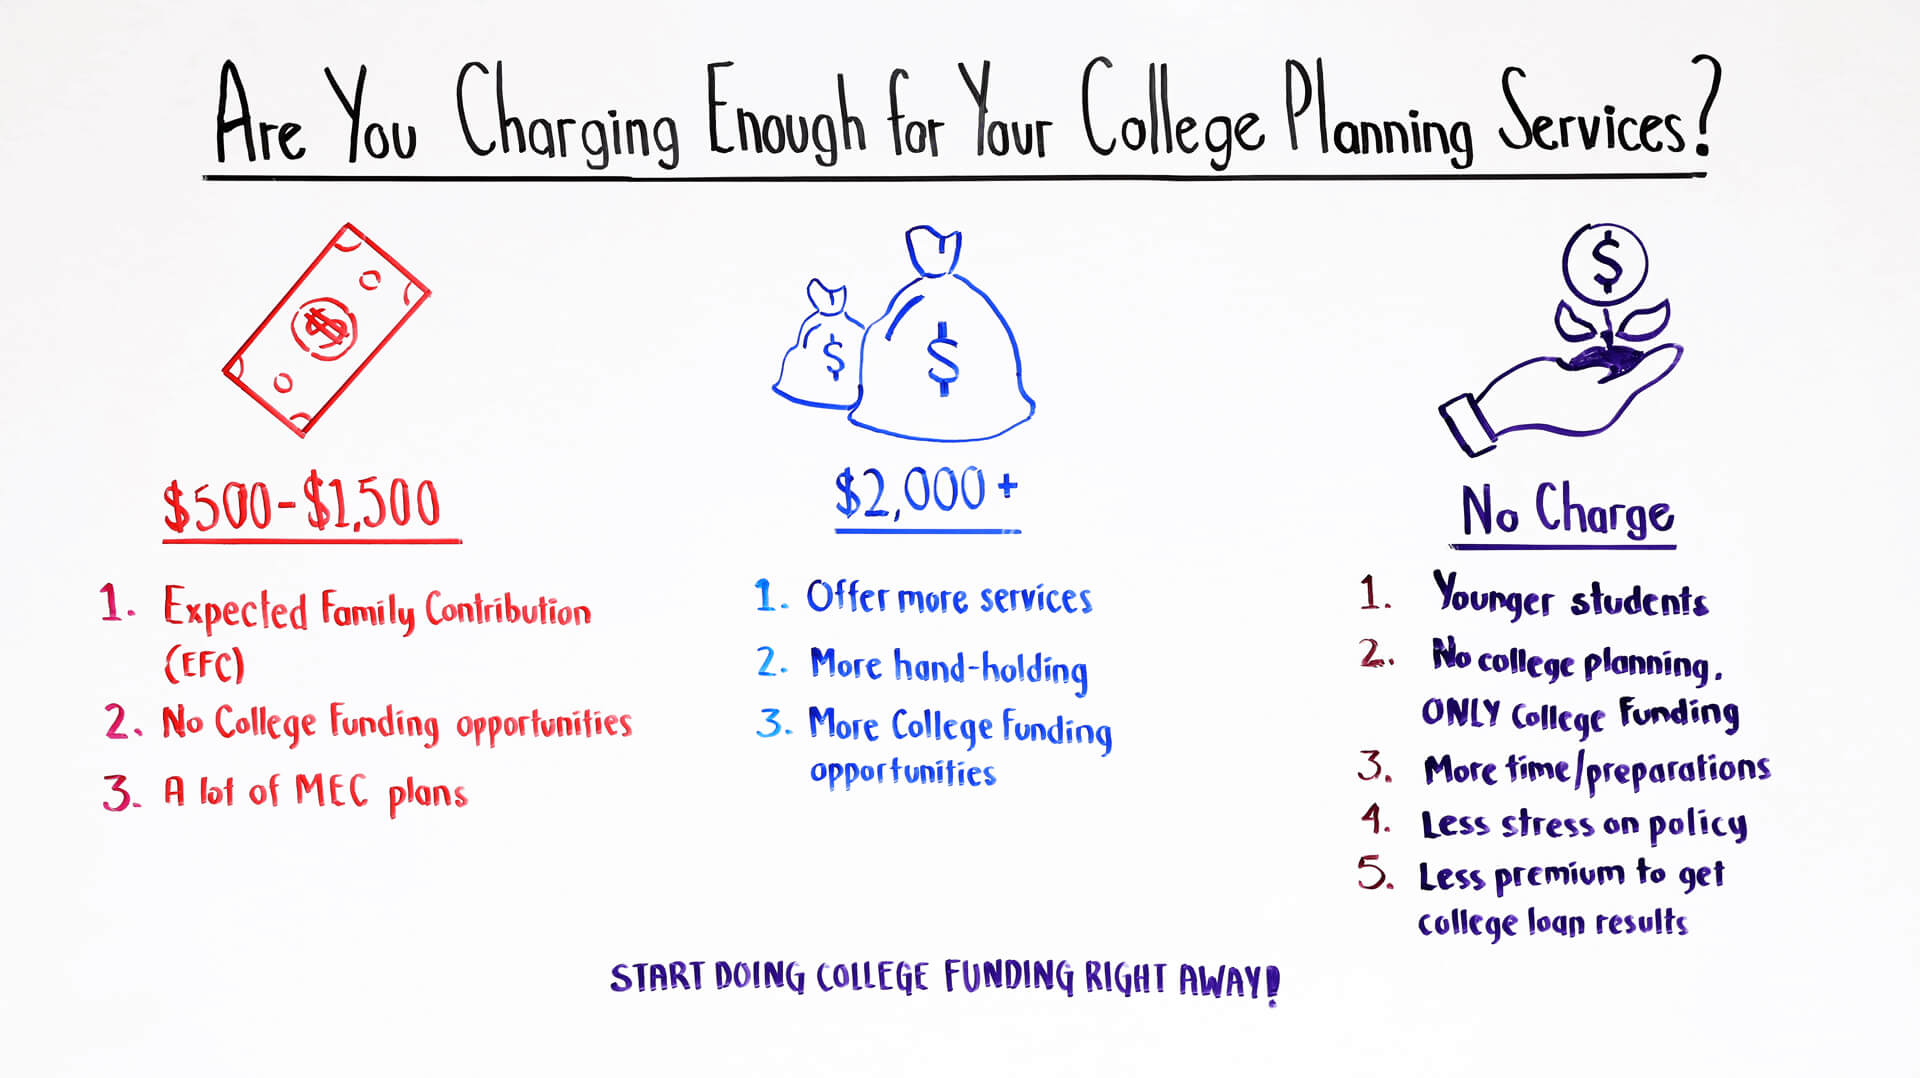 Are You Charging Enough for Your College Planning Services